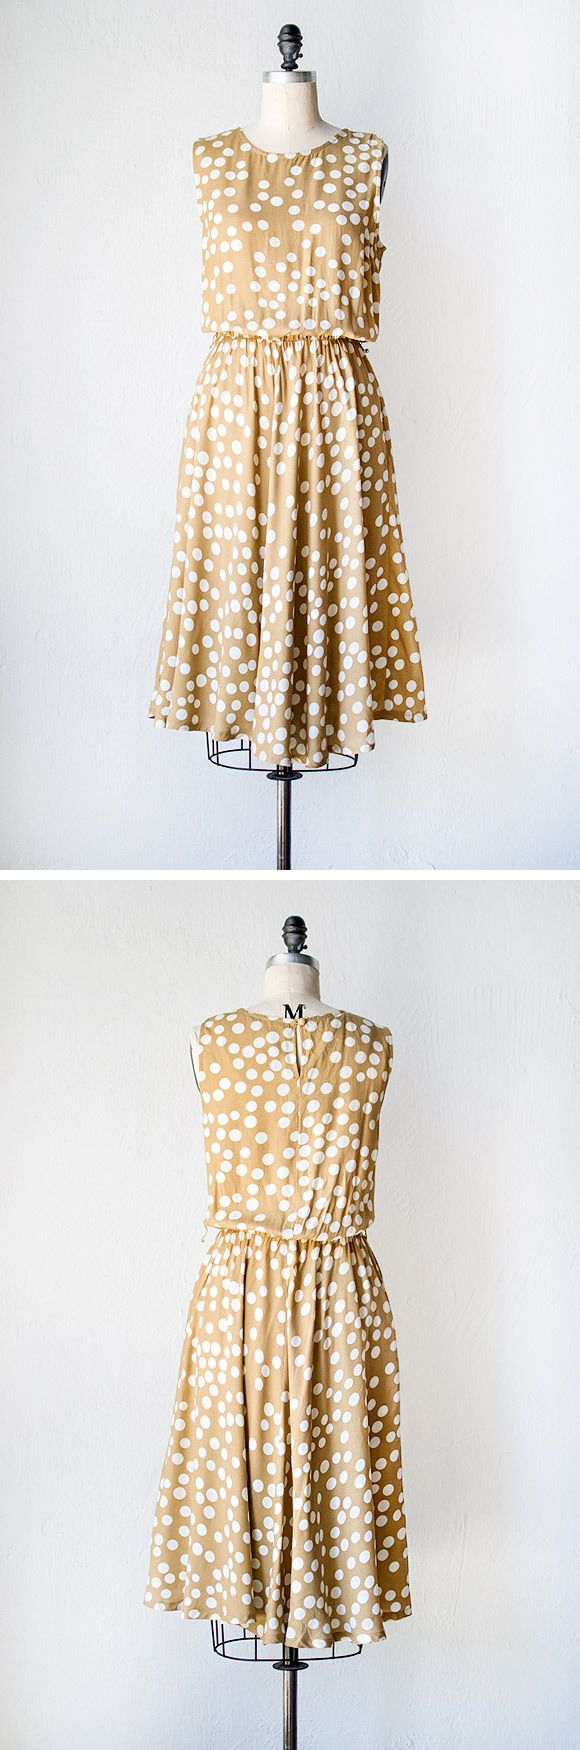 vintage 1980s dress | Dappled Sunspots Dress